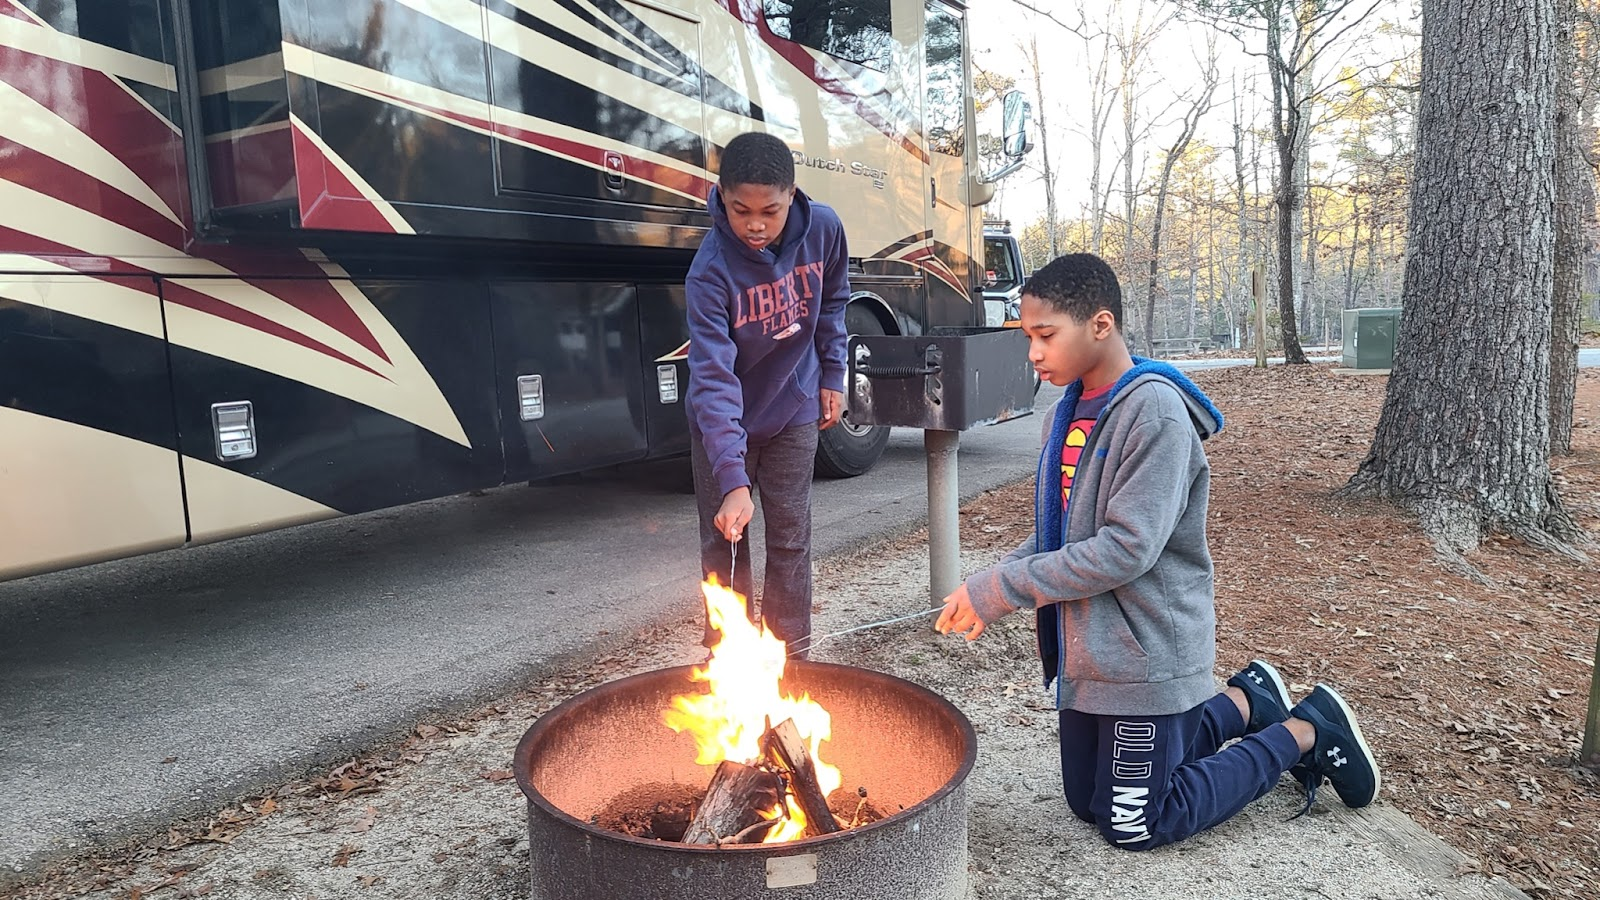 Two brothers roast marshmallows over the fire